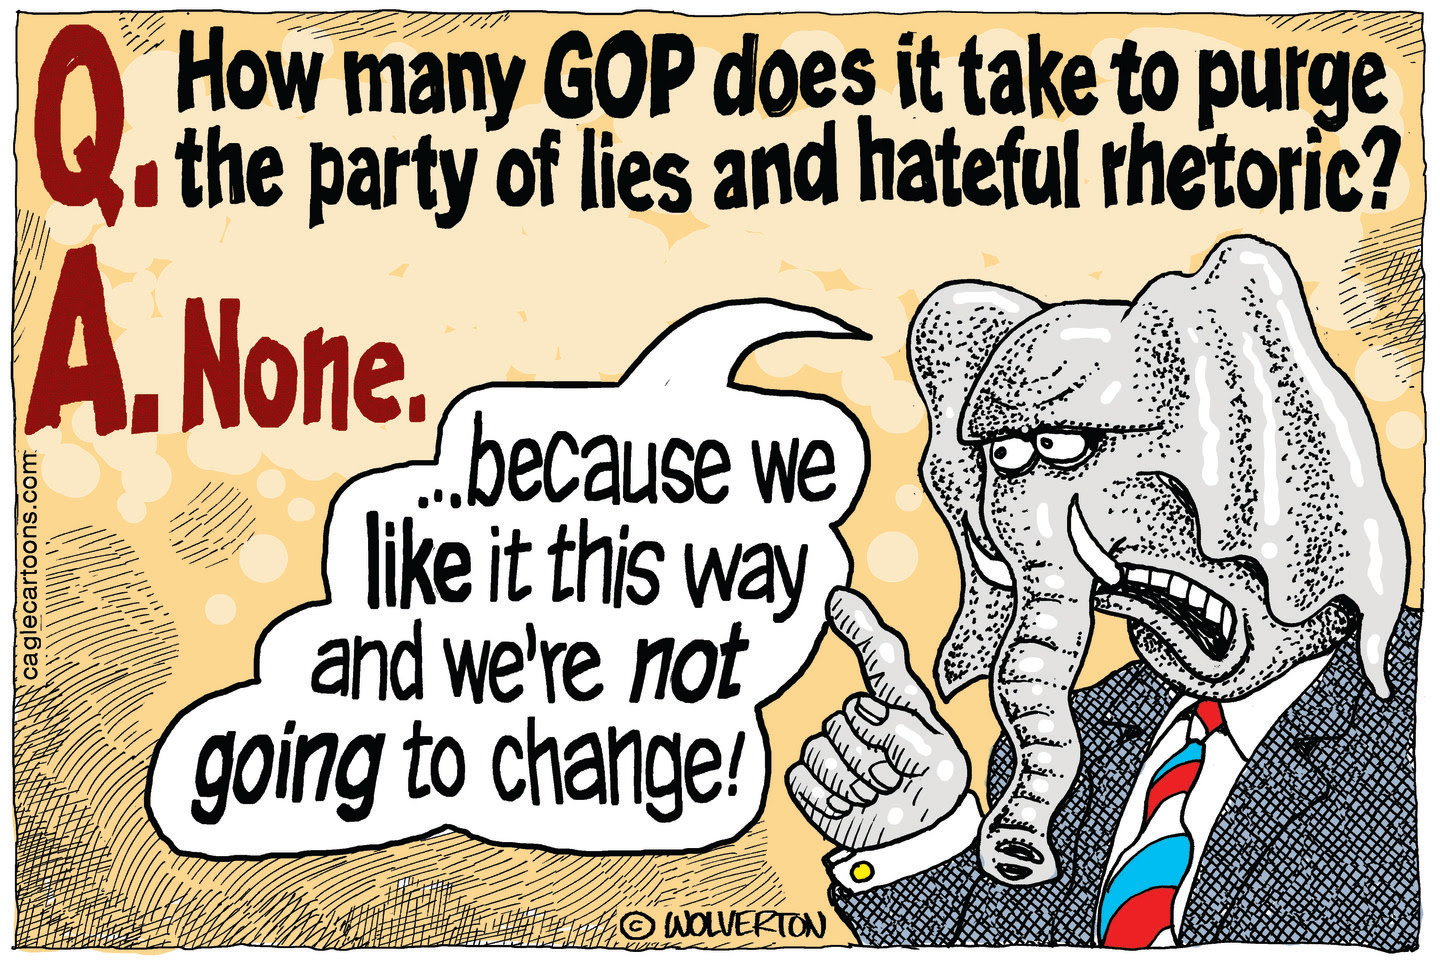 Republicans use racism to divide voters in order to stay in power.